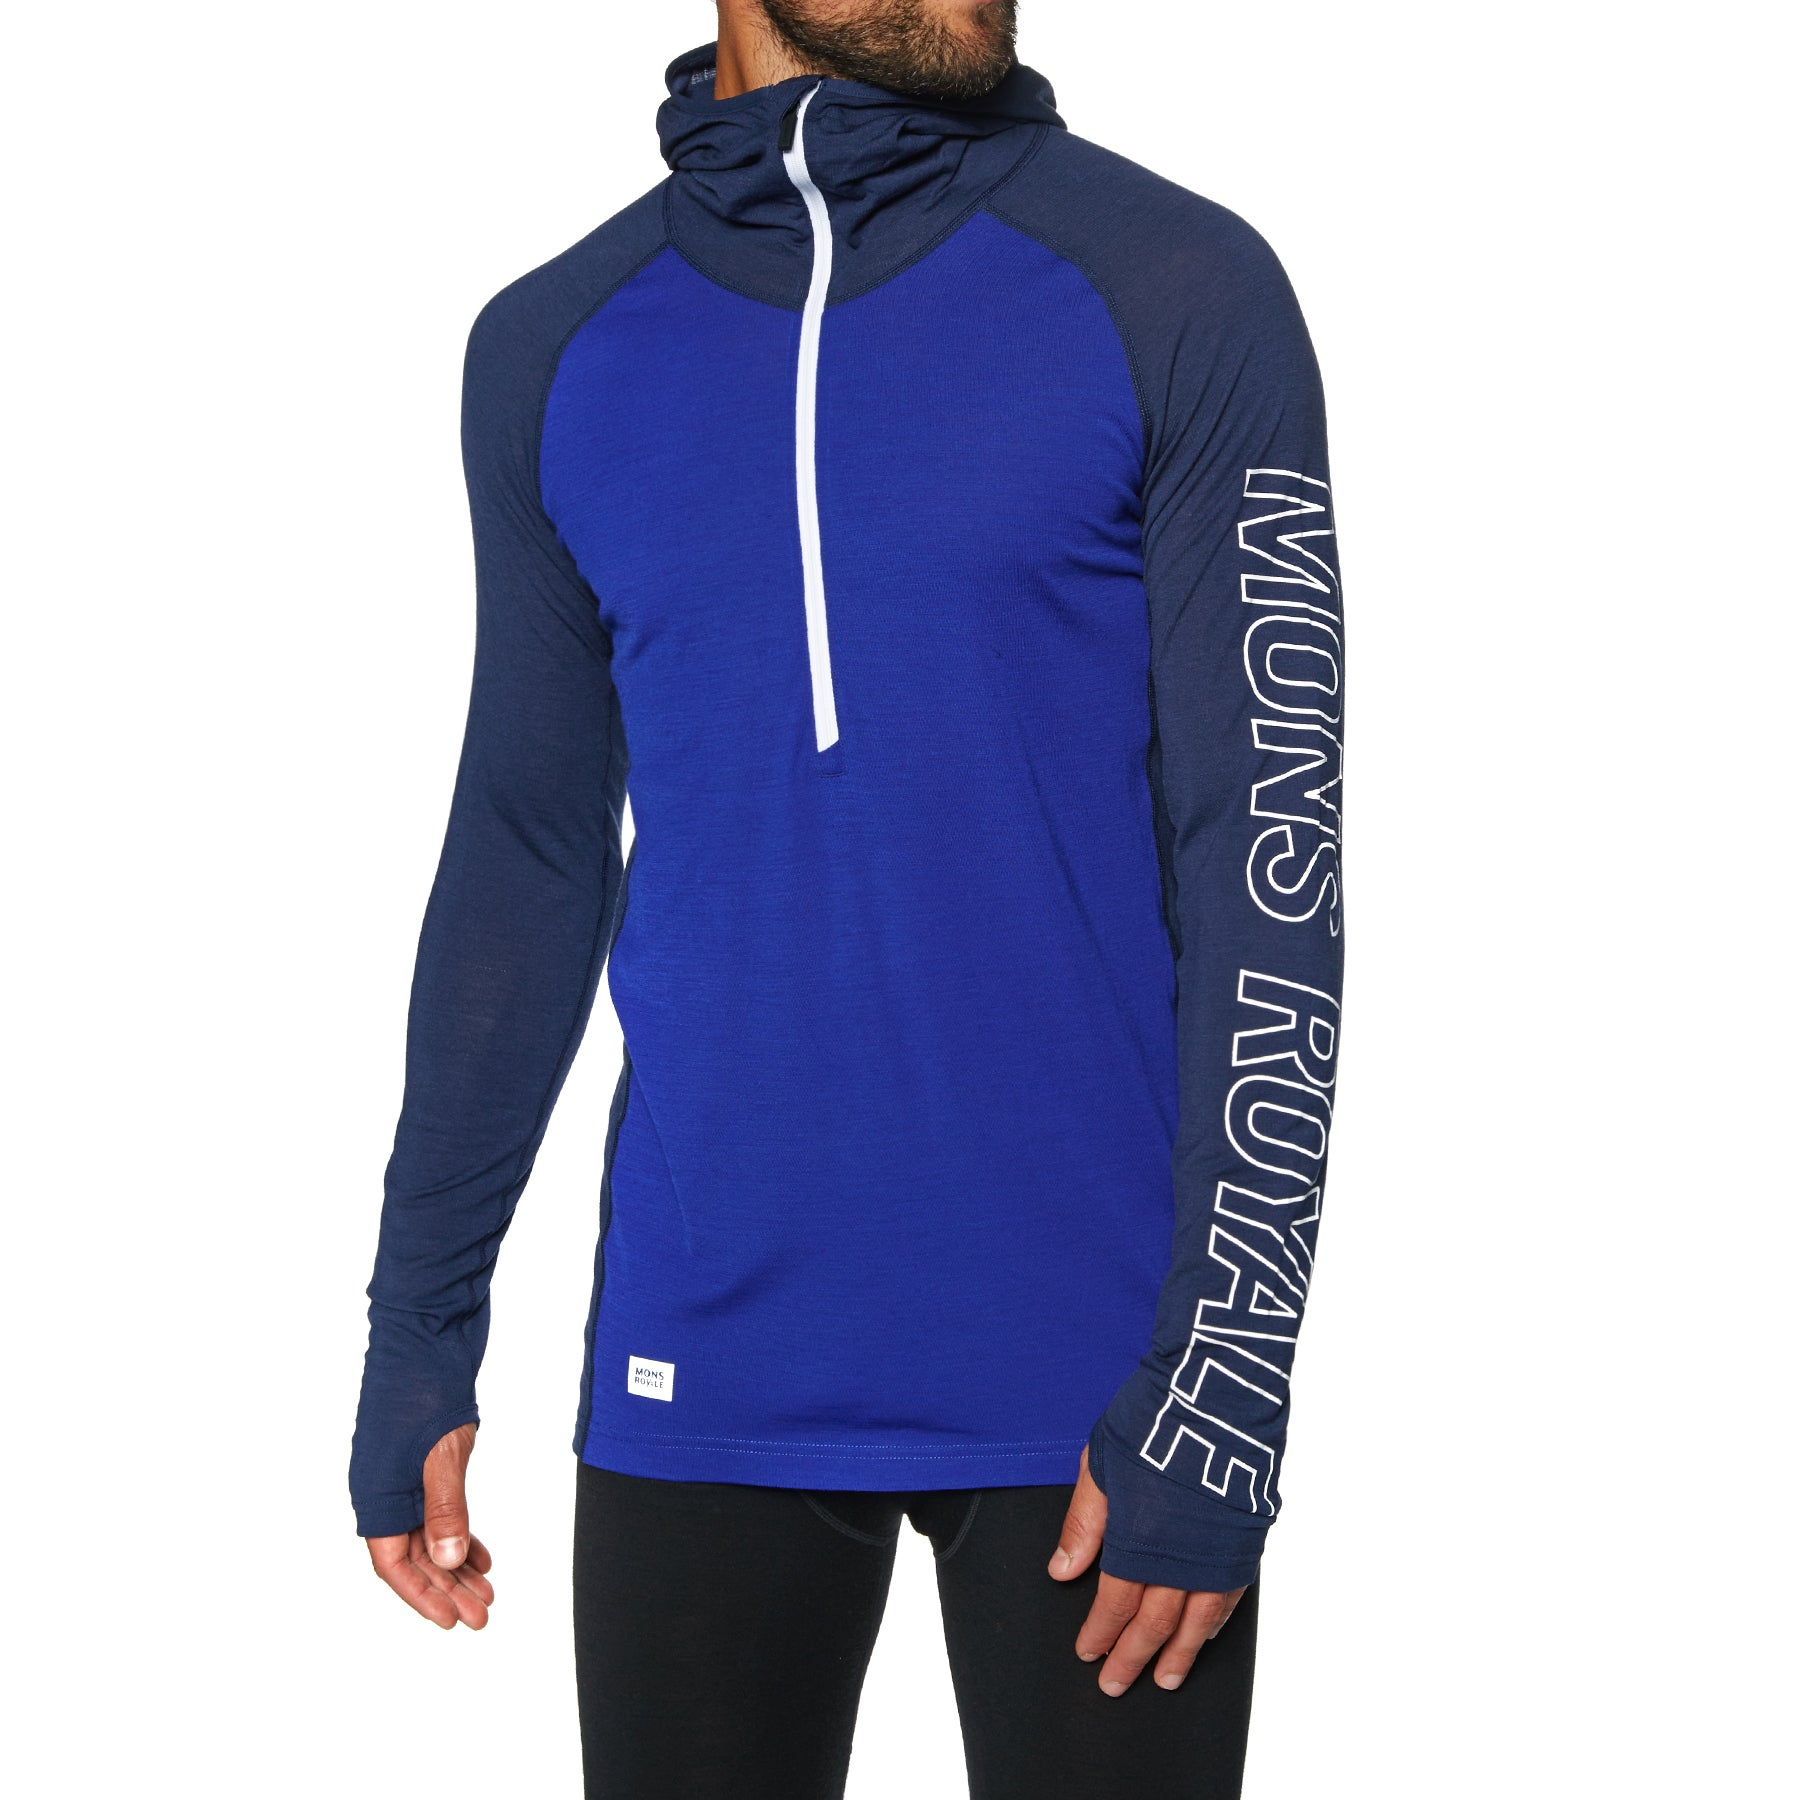 Mons Royale Temple Tech Hooded Base Layer Top - Navy Electric Blue